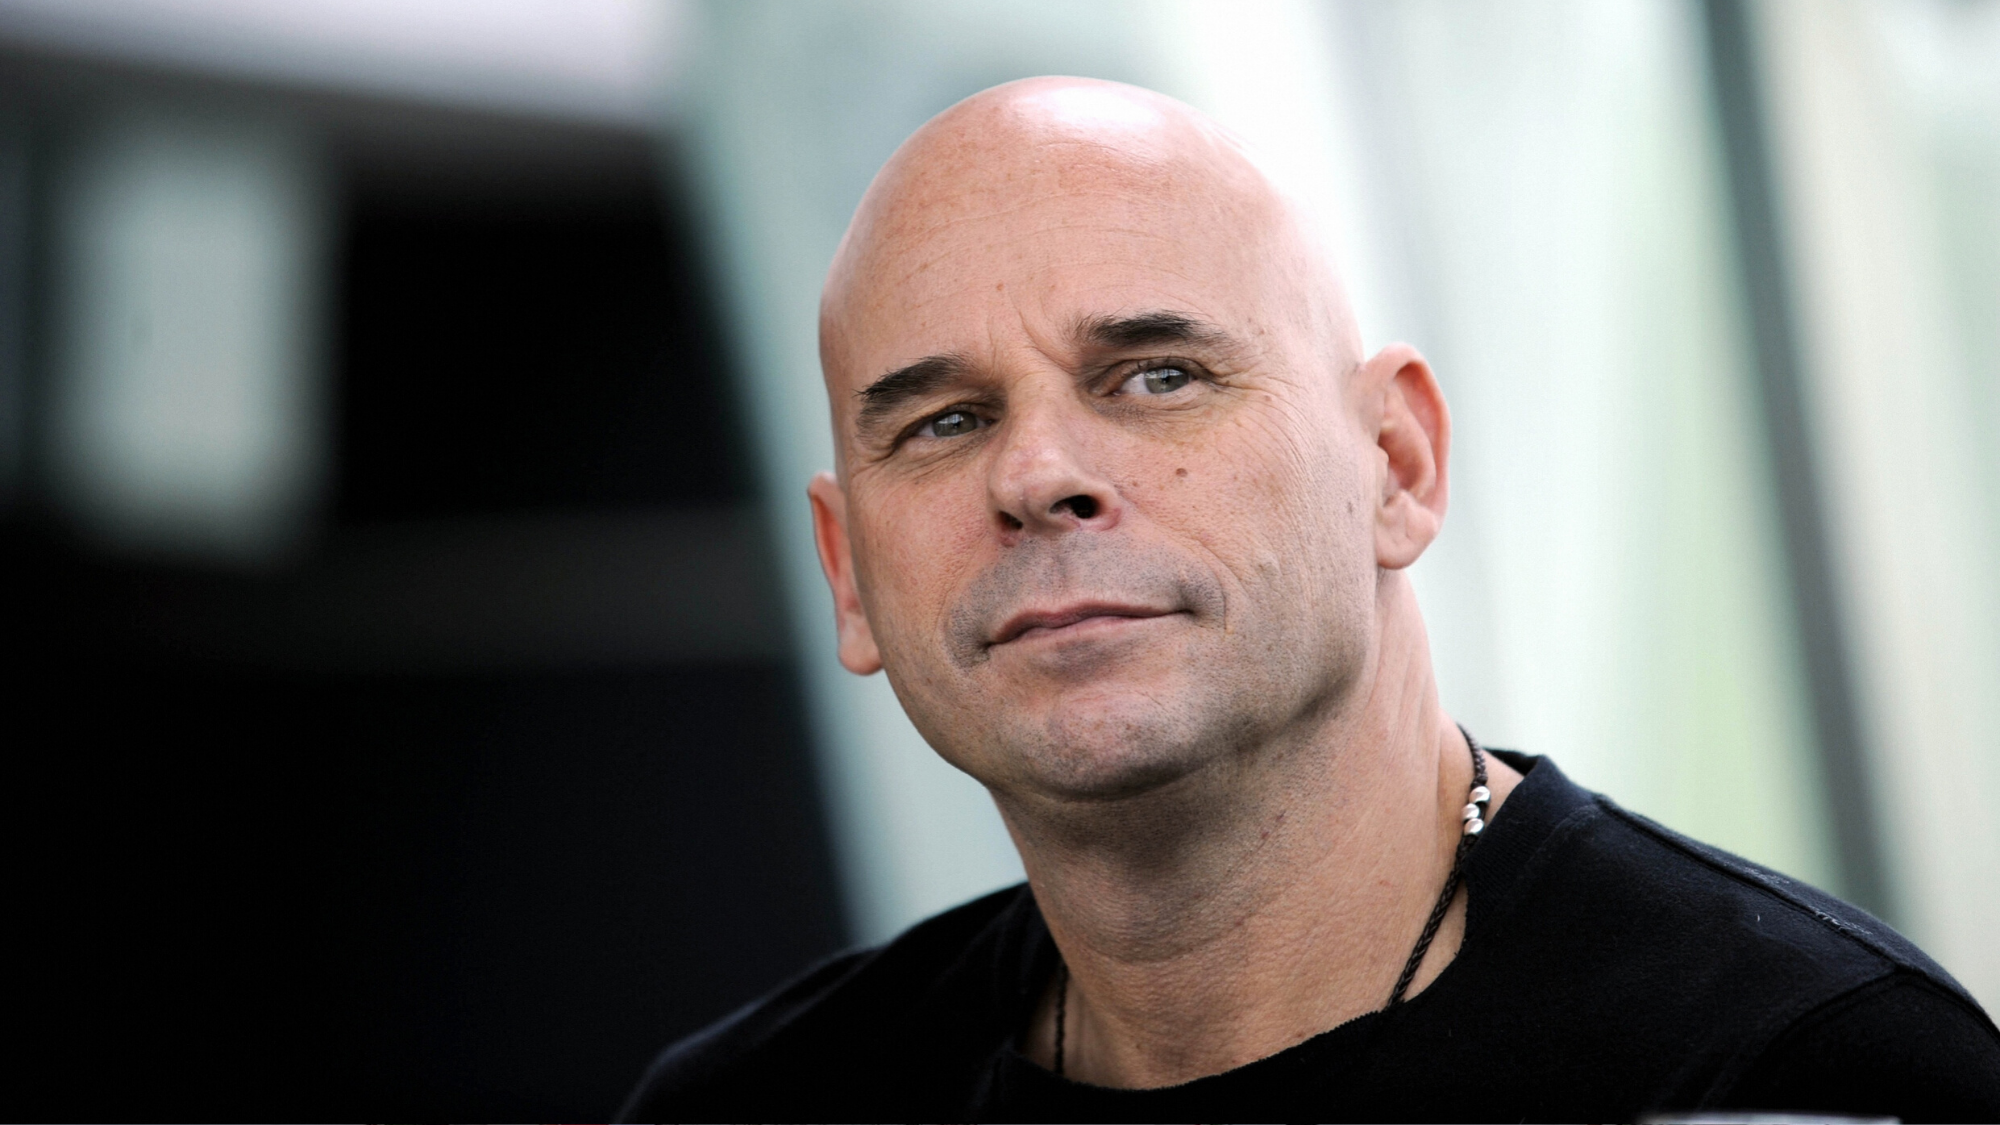 Guy Laliberte, Cirque Du Soleil Founder, Investigated Over Cannabis Claims